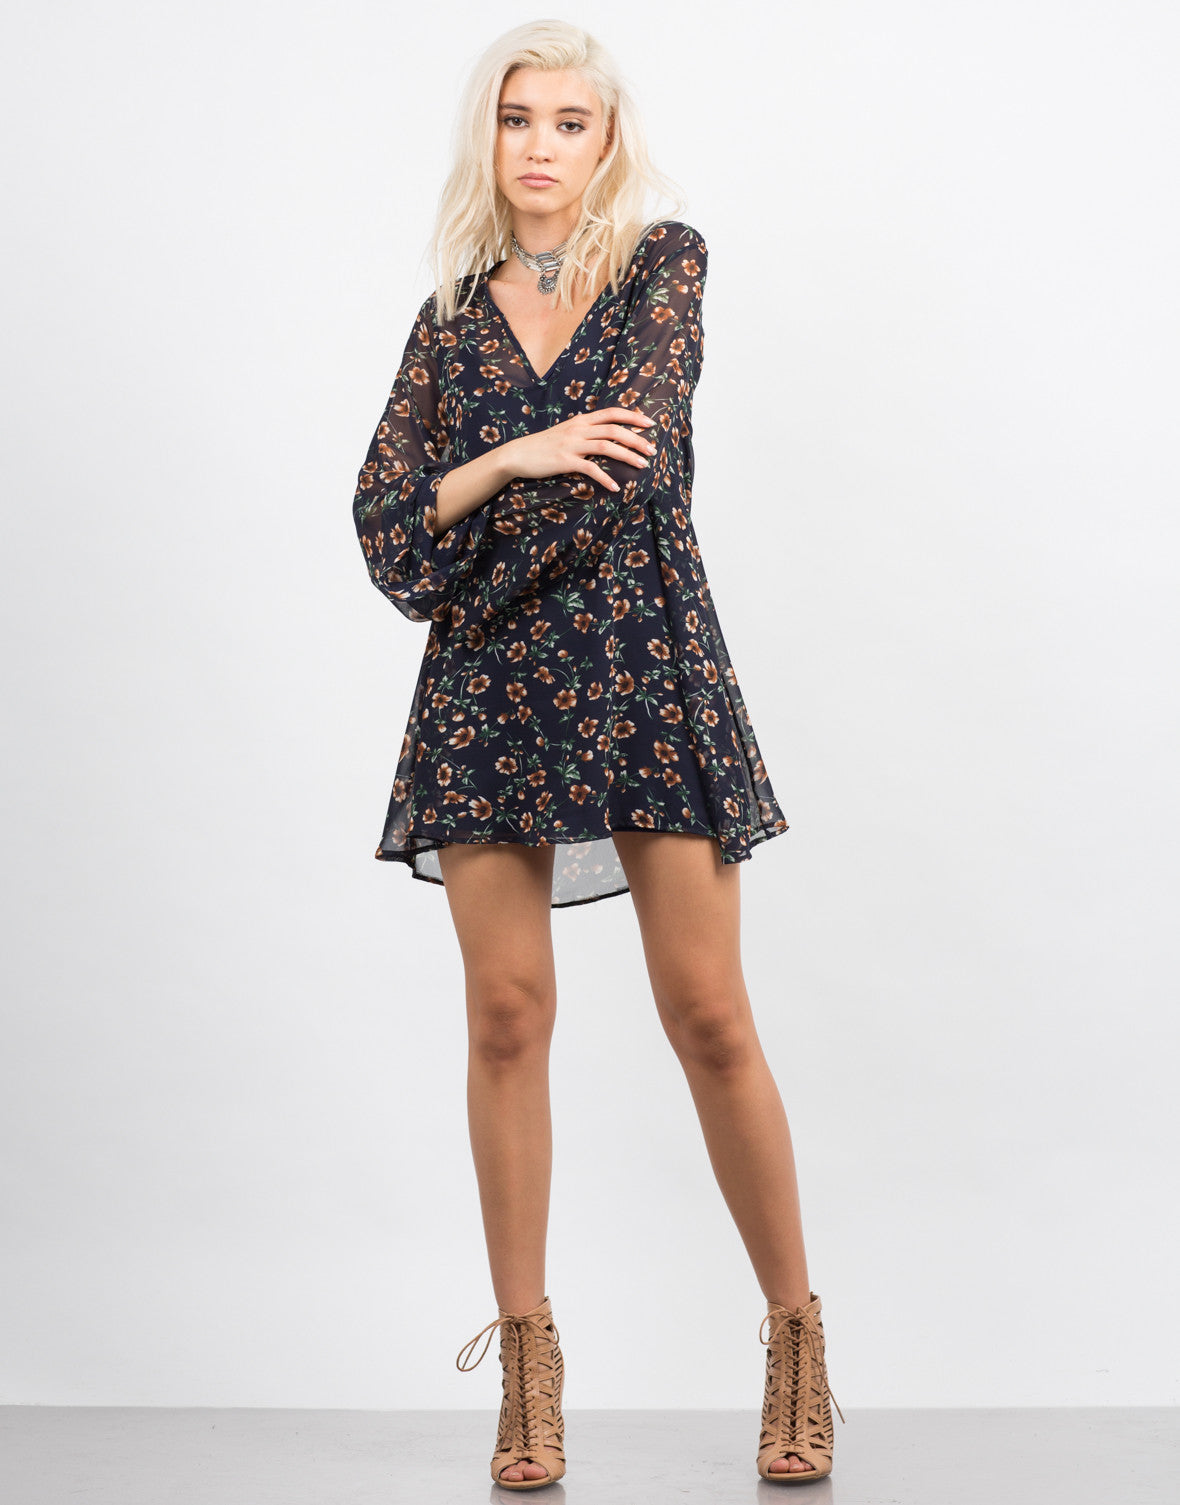 Front View of Chiffon Floral Dress